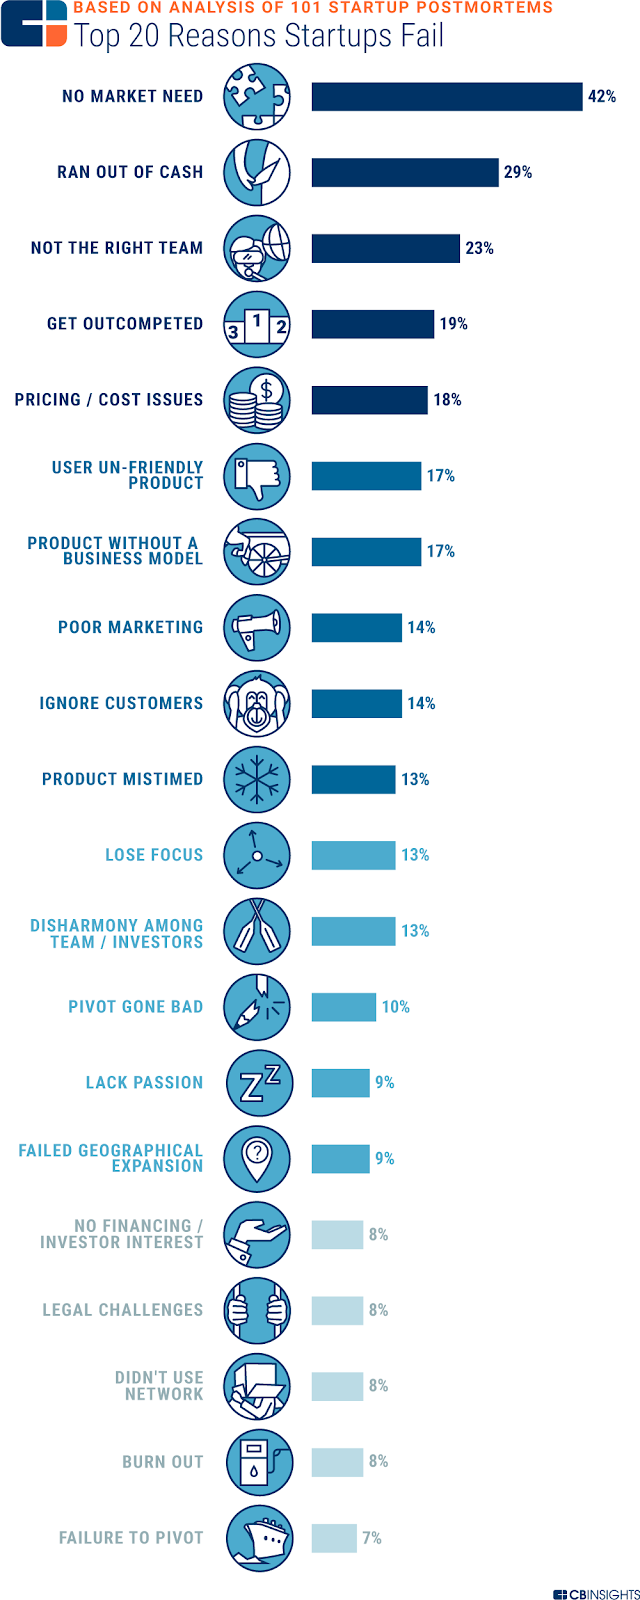 CB Insights—top 20 reasons why startups fail